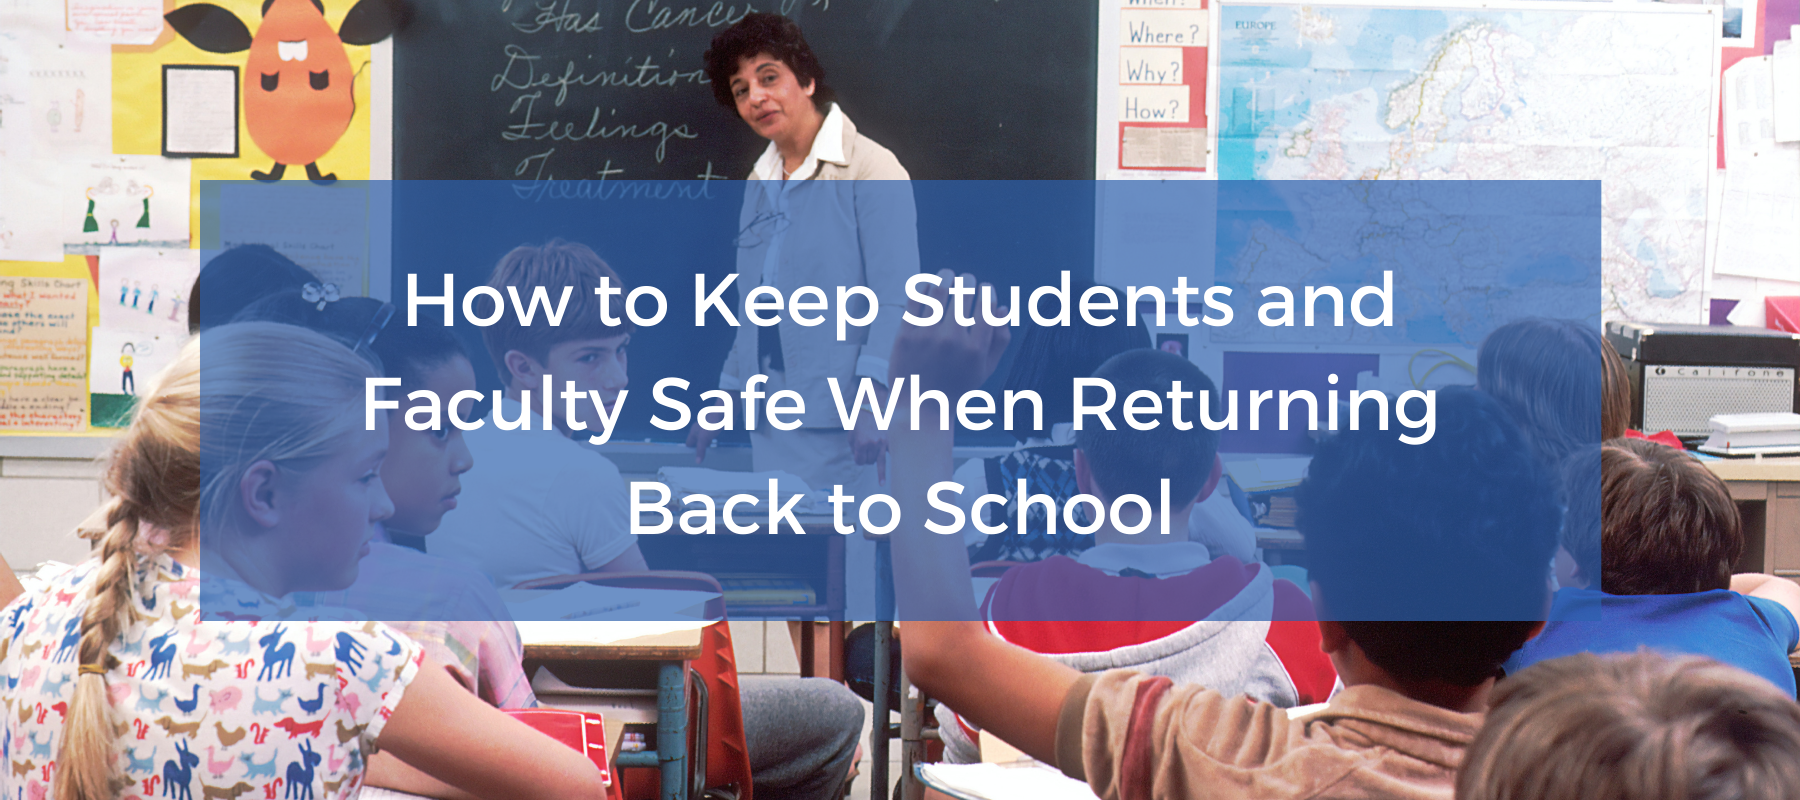 How to Keep Students and Faculty Safe When Returning Back to School Blog Featured Image